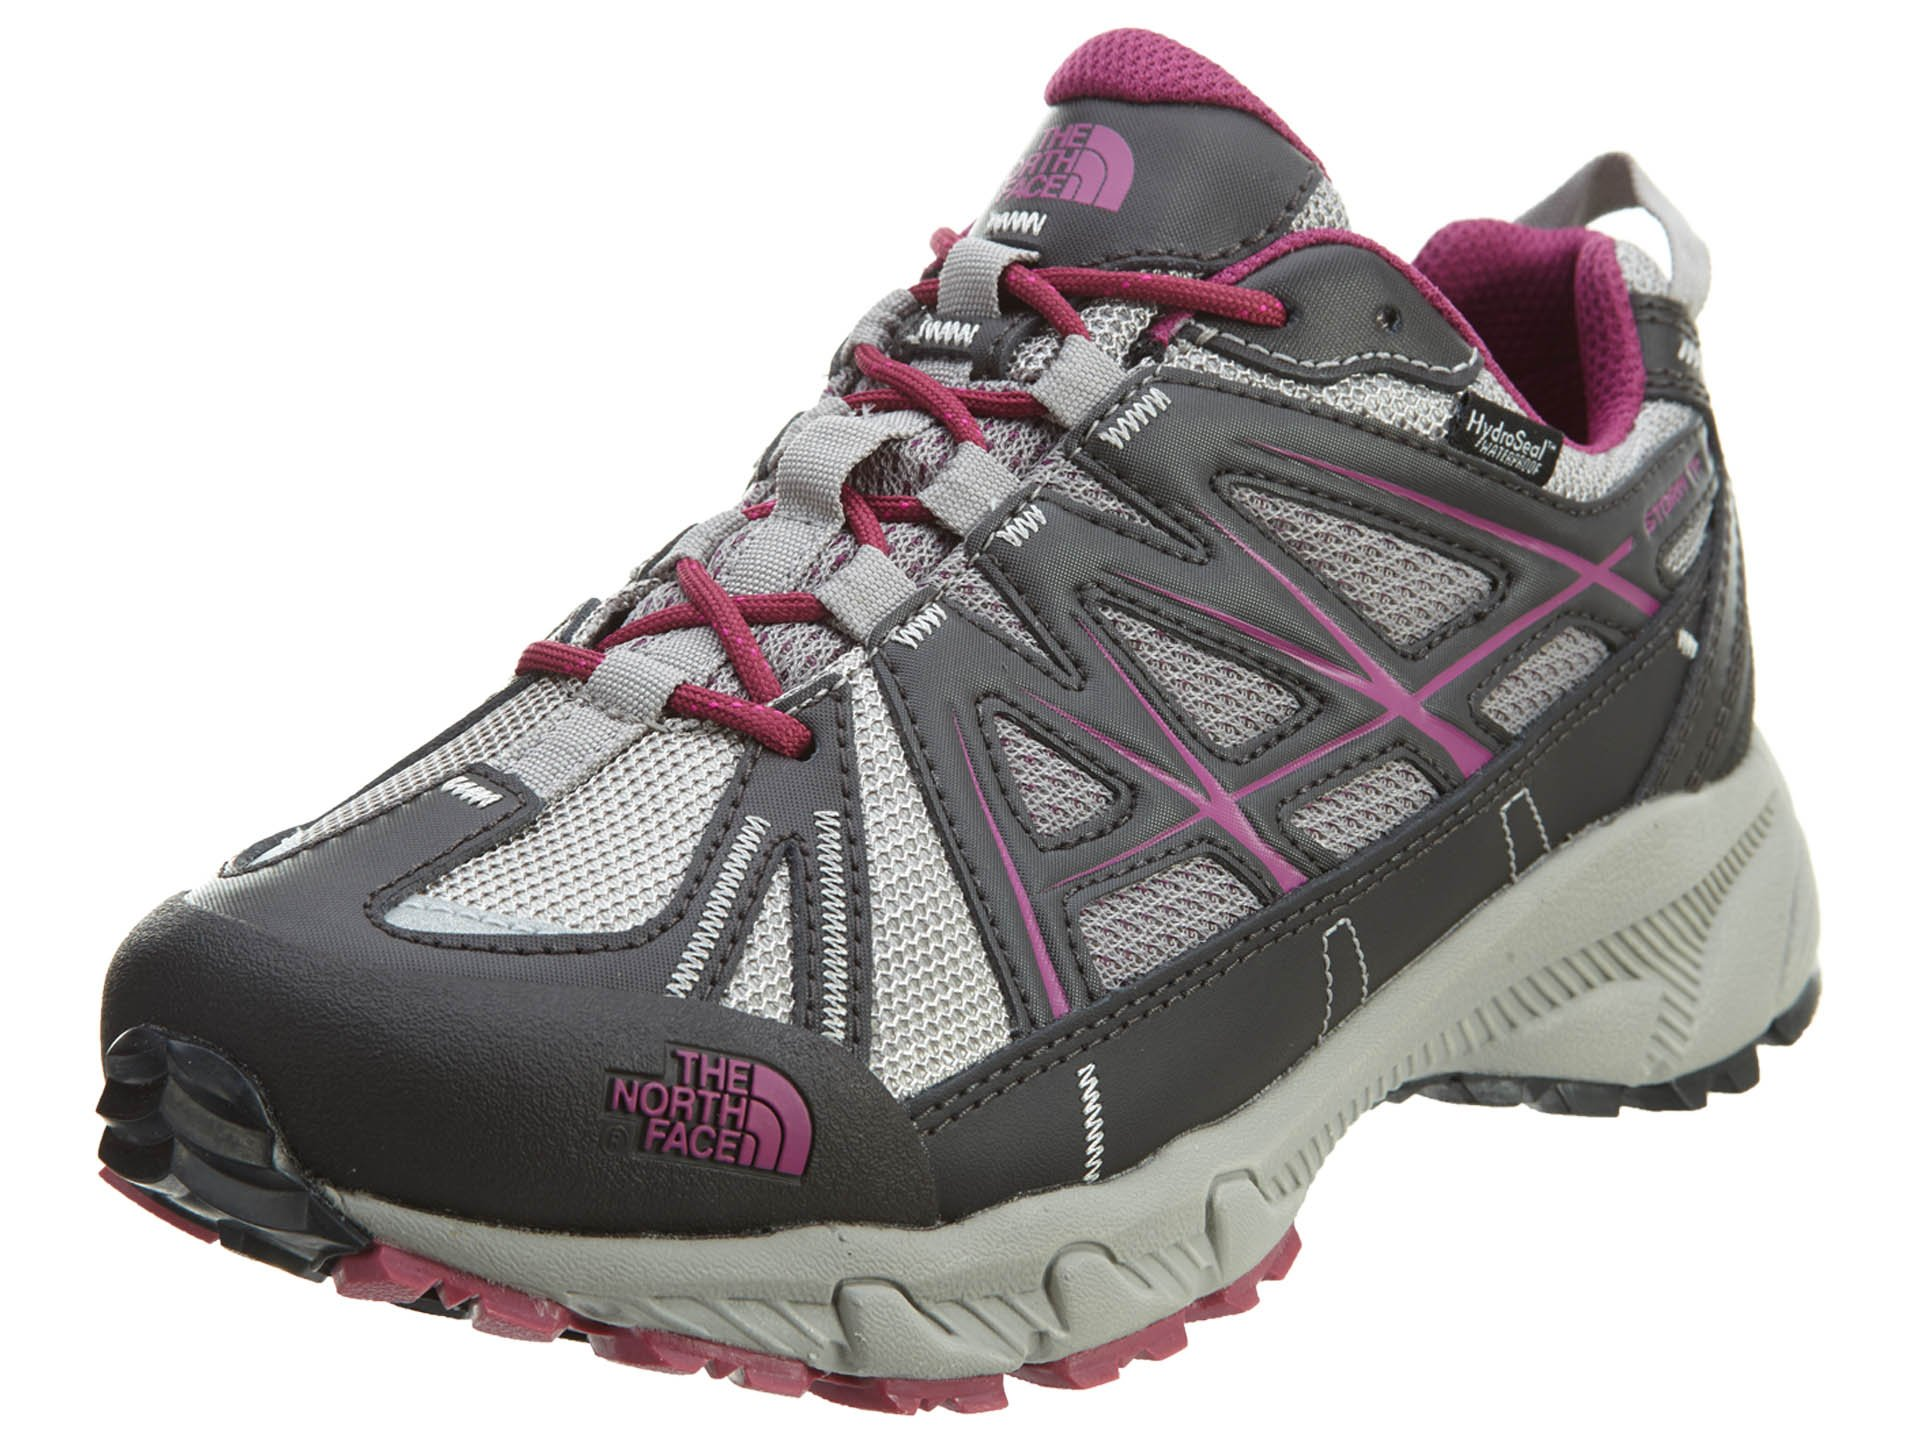 The North Face Storm Tr Waterproof Shoe Womens Style: CJ9S-DXK Size: 7.5 by The North Face